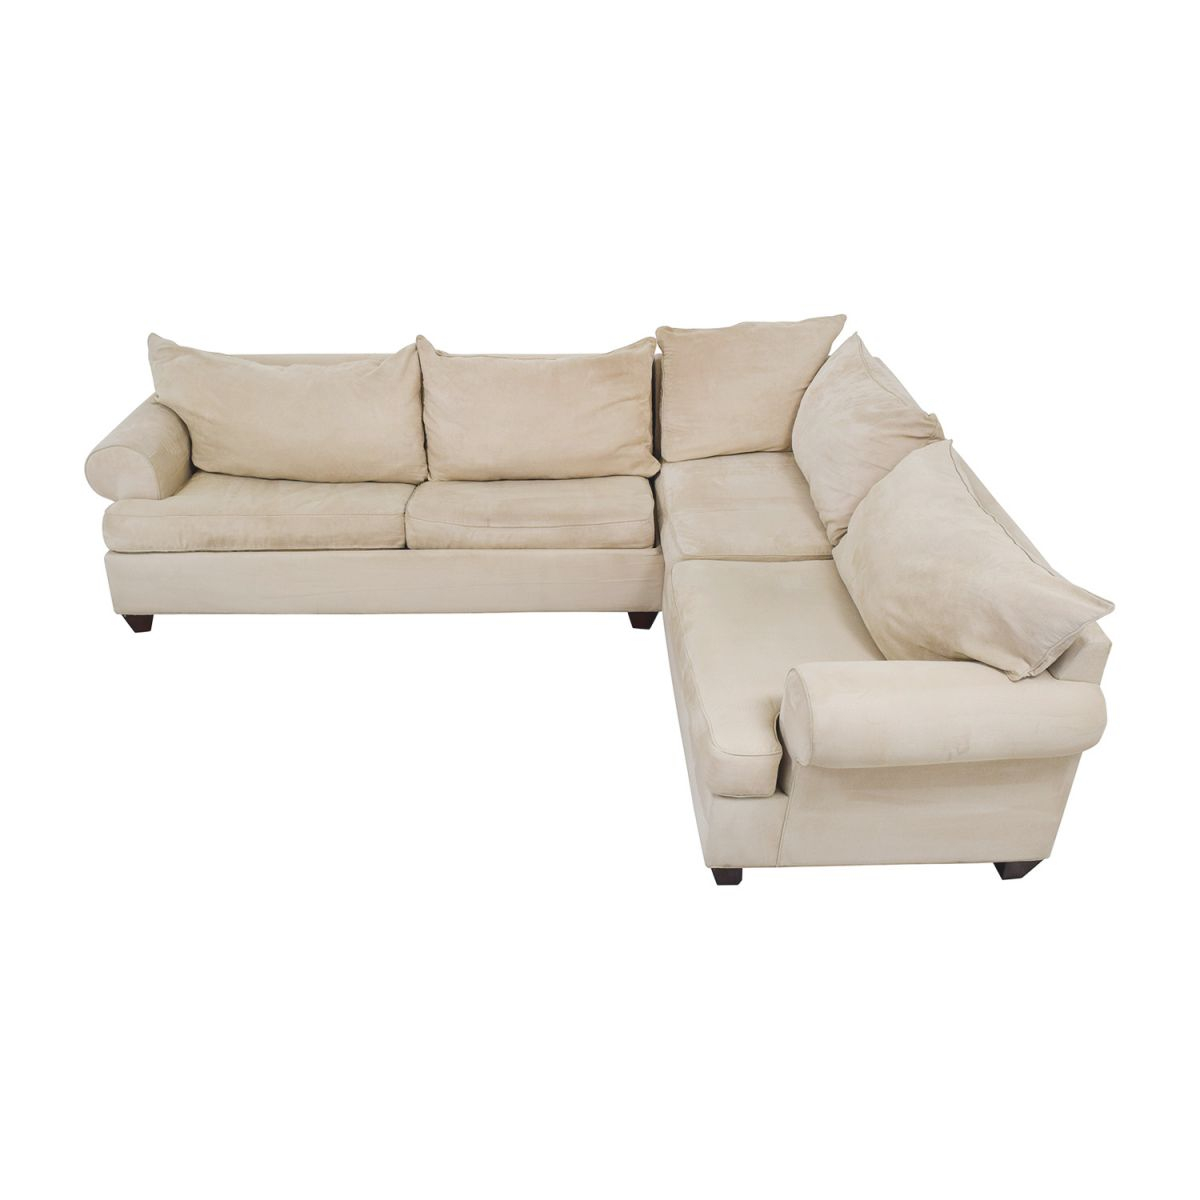 76 Off Raymour Flanigan Raymour Flanigan Sectional Sleeper Sofa Sofas With Regard To Raymour And Flanigan Sleeper Sofa Awesome Decors